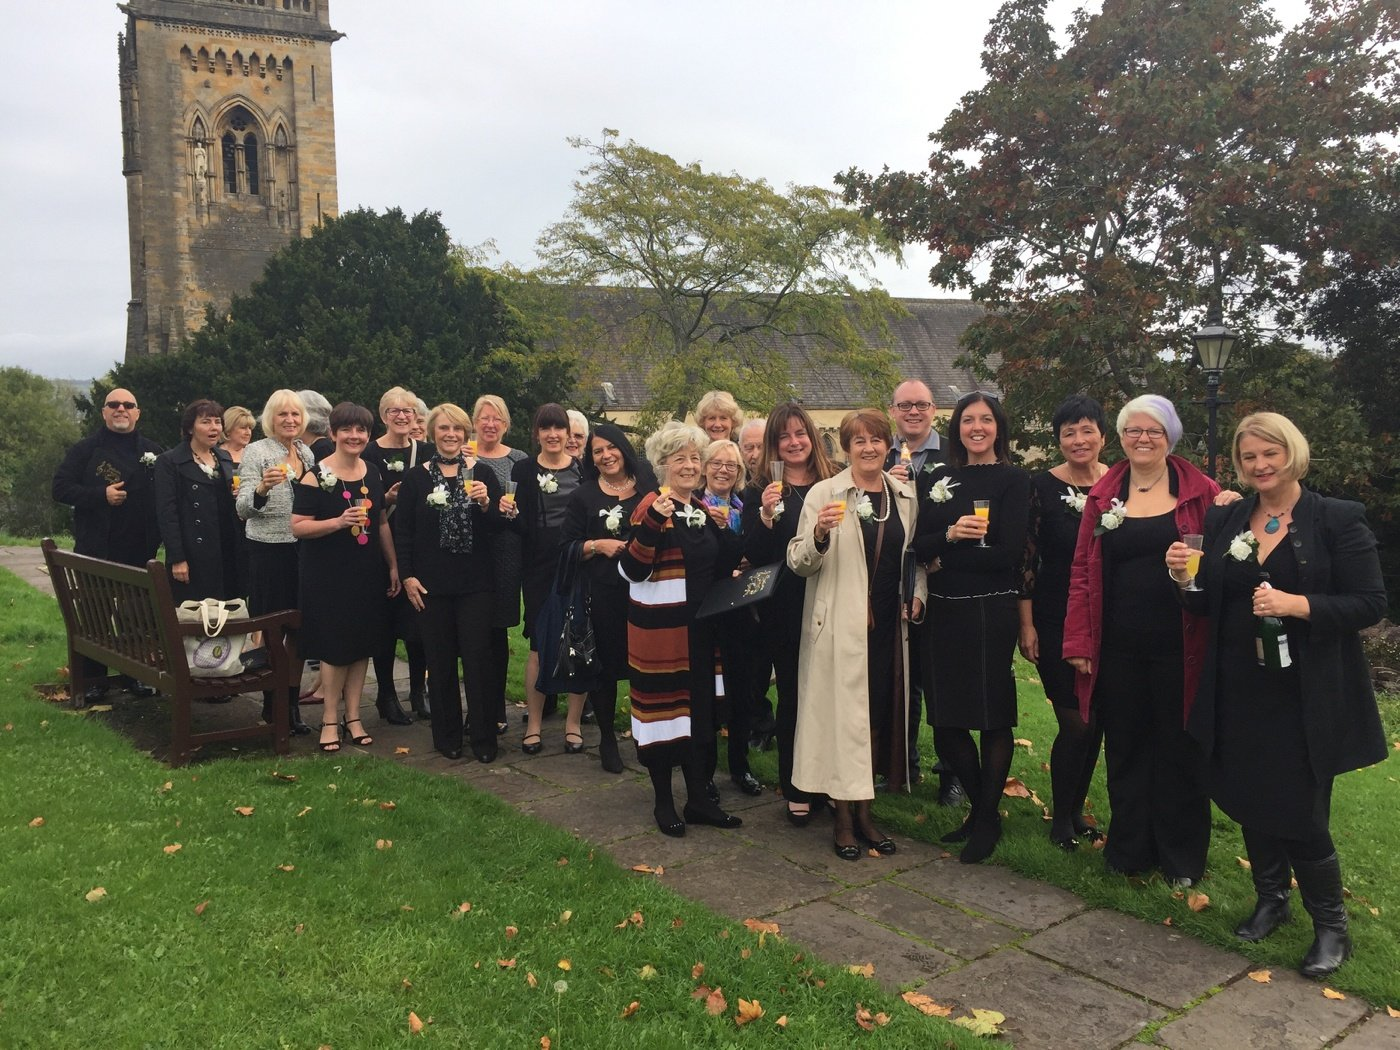 https://0501.nccdn.net/4_2/000/000/008/486/Choir-at-Llandaff-1400x1050.jpg